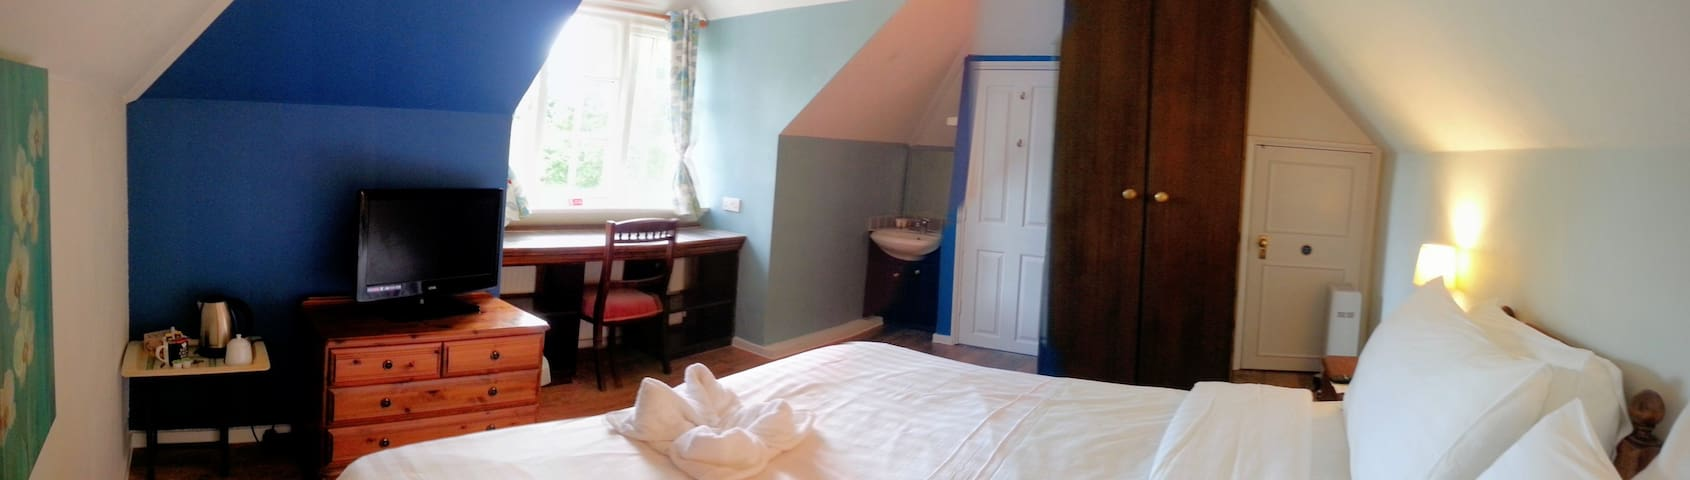 Room 6 at Rosemead Guest House - Claygate - Bed & Breakfast